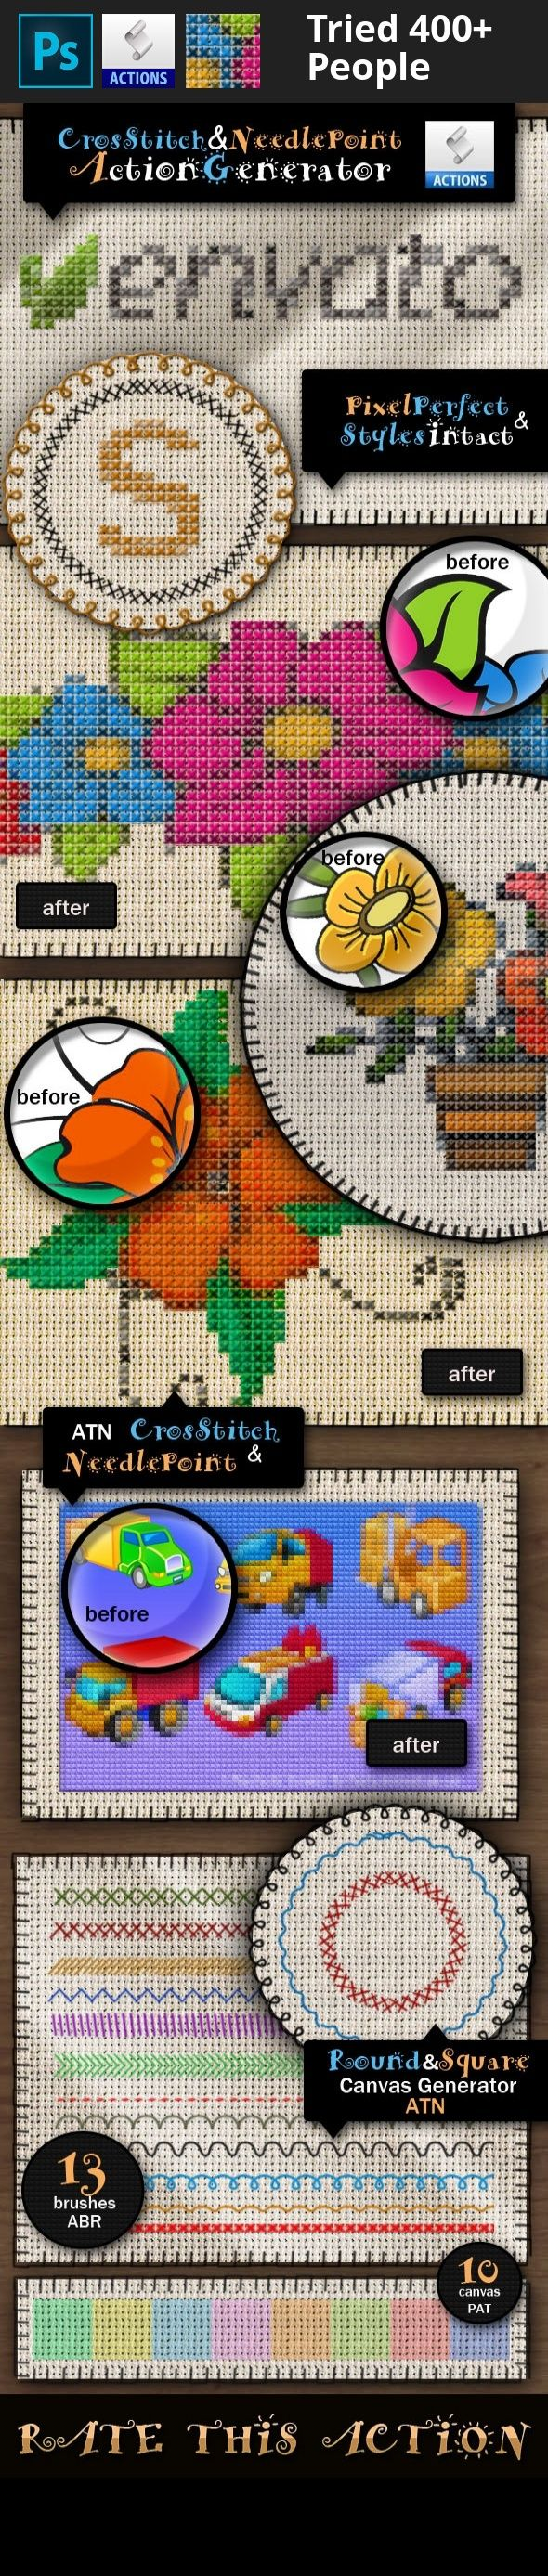 canvas pattern, cross stitch generator, cross stitch pattern, needlepoint generator, photoshop action, stitch action, stitch border, stitch brushes, stitch photoshop       UPDATE: I have added a bonus action that allows you to set the size of the cross stitch. The old action uses a 12px cross stitch cell while the new action allows you to choose the size from 1px to 100px .   This gobelin editor action pack will allow you to create realistic cross stitch and needlepoint effects out of…